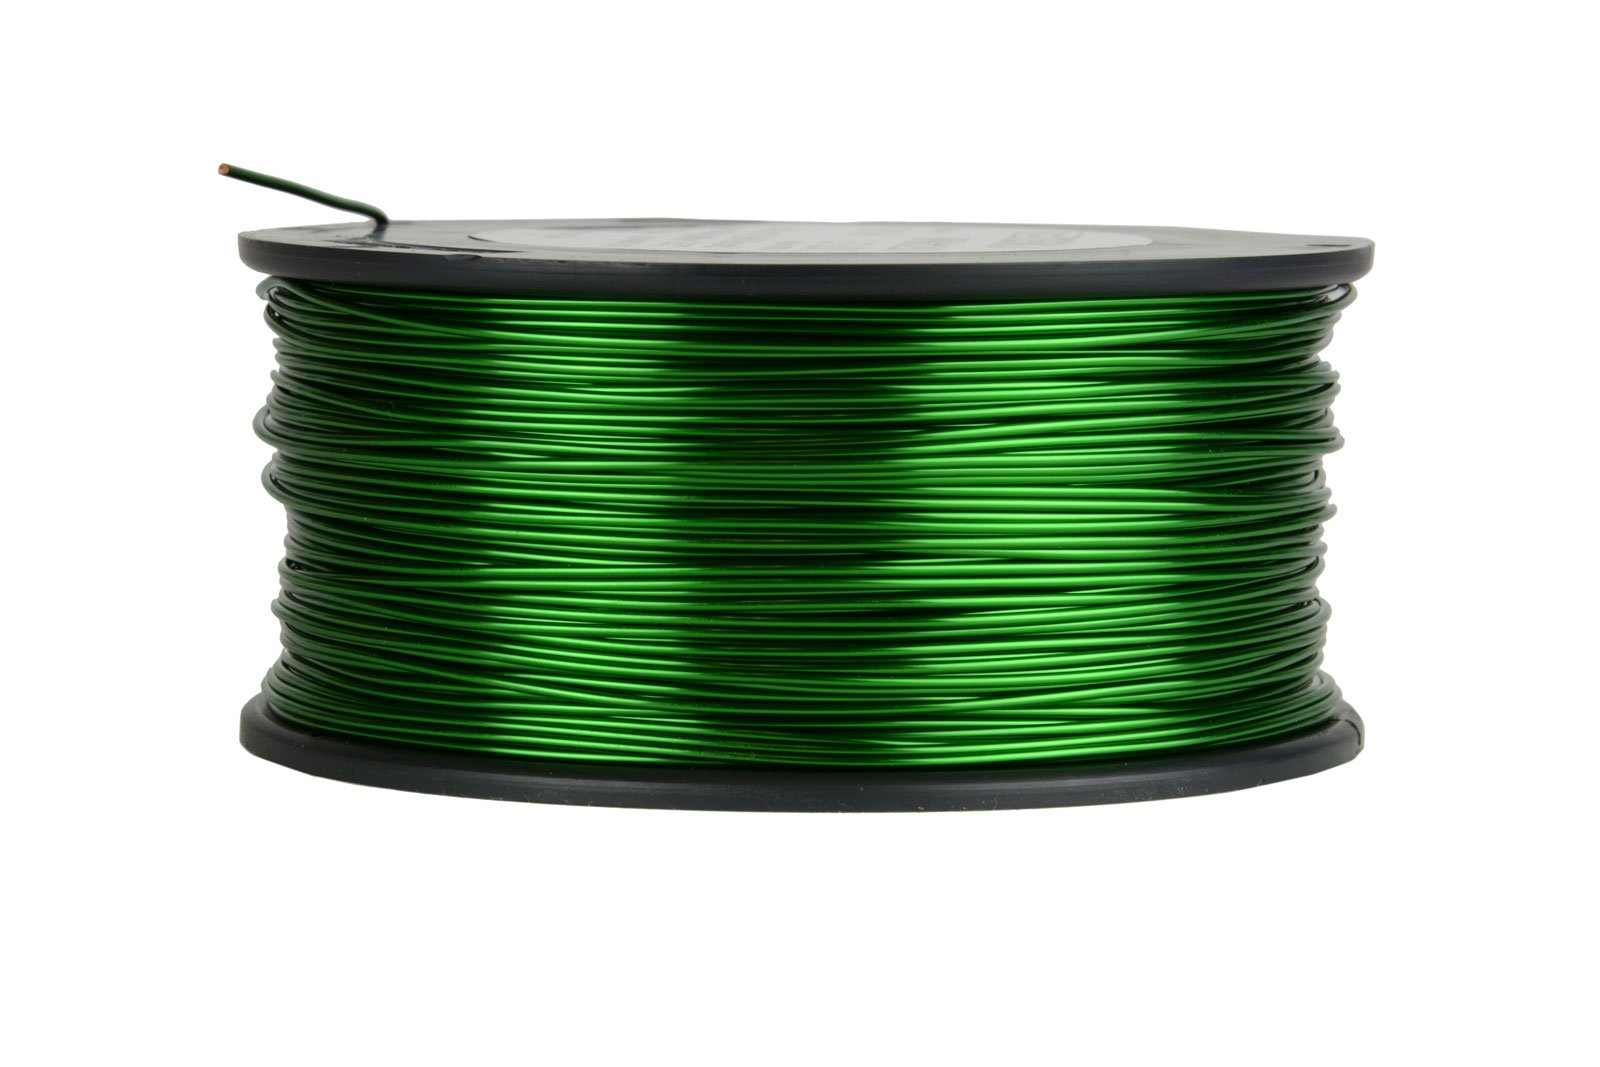 TEMCo 18 AWG Copper Magnet Wire - 1.5 lb 299 ft